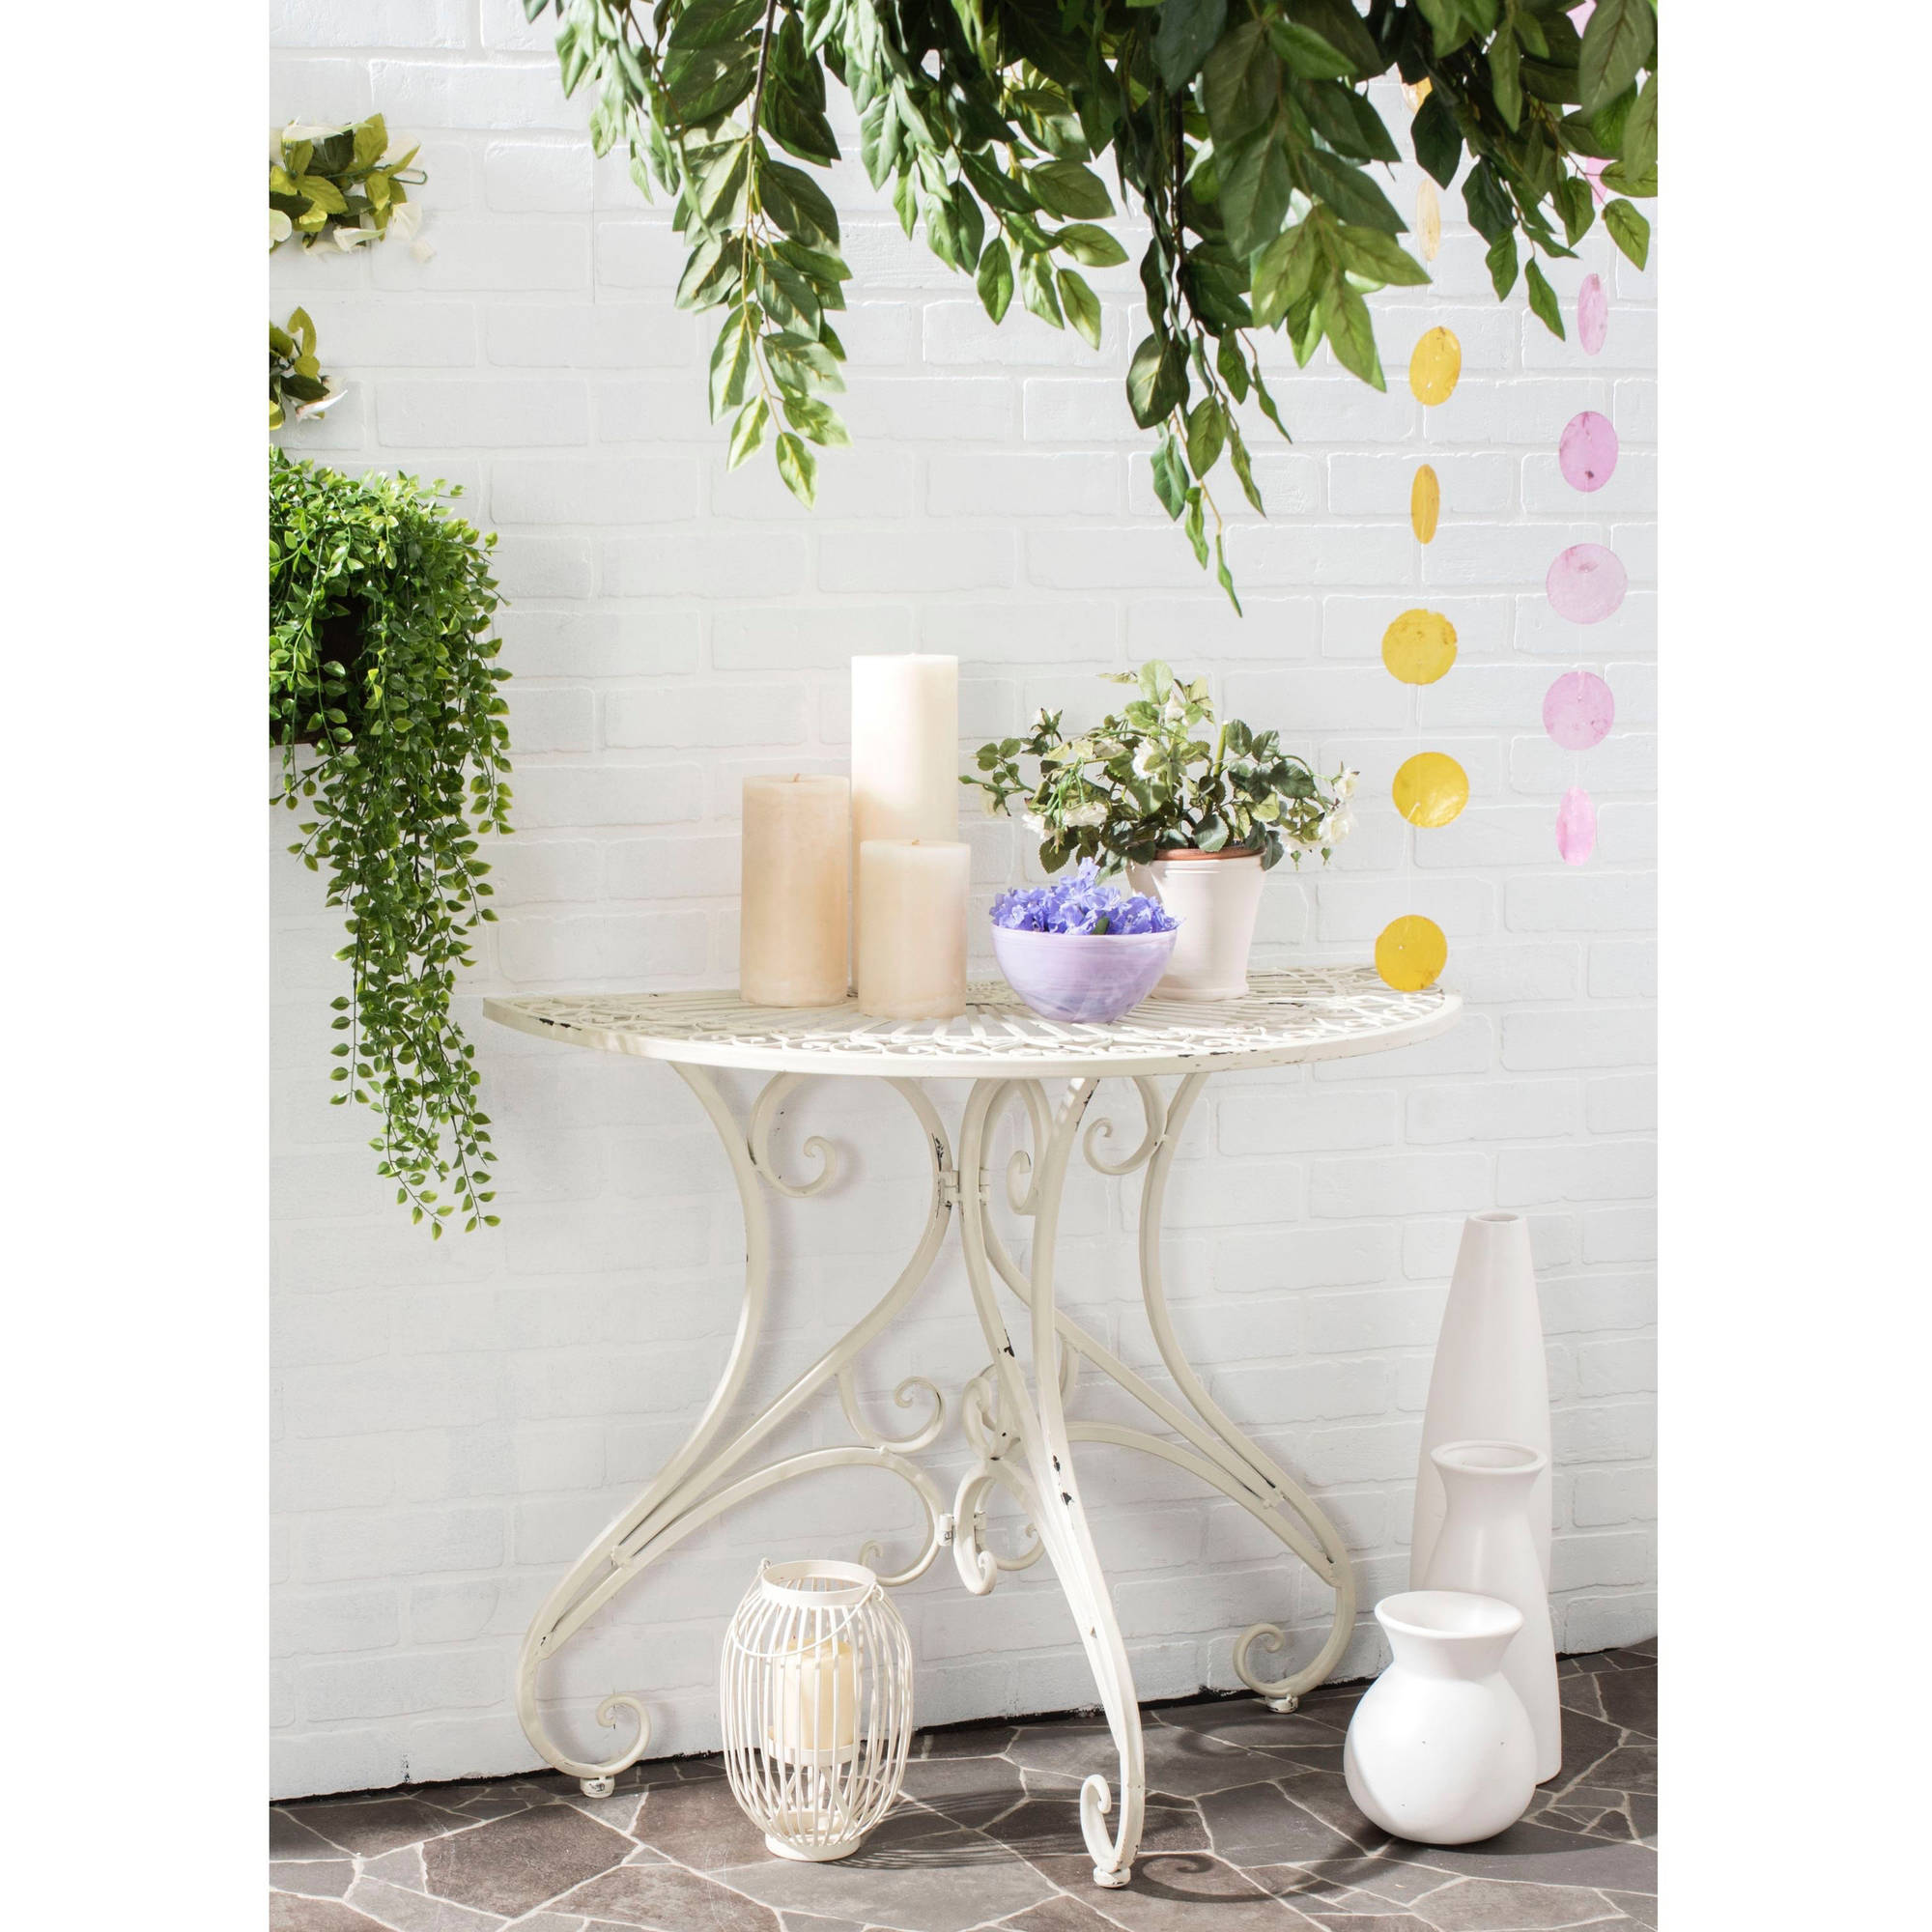 Safavieh Annalise Outdoor Accent Table, Antique White by Safavieh